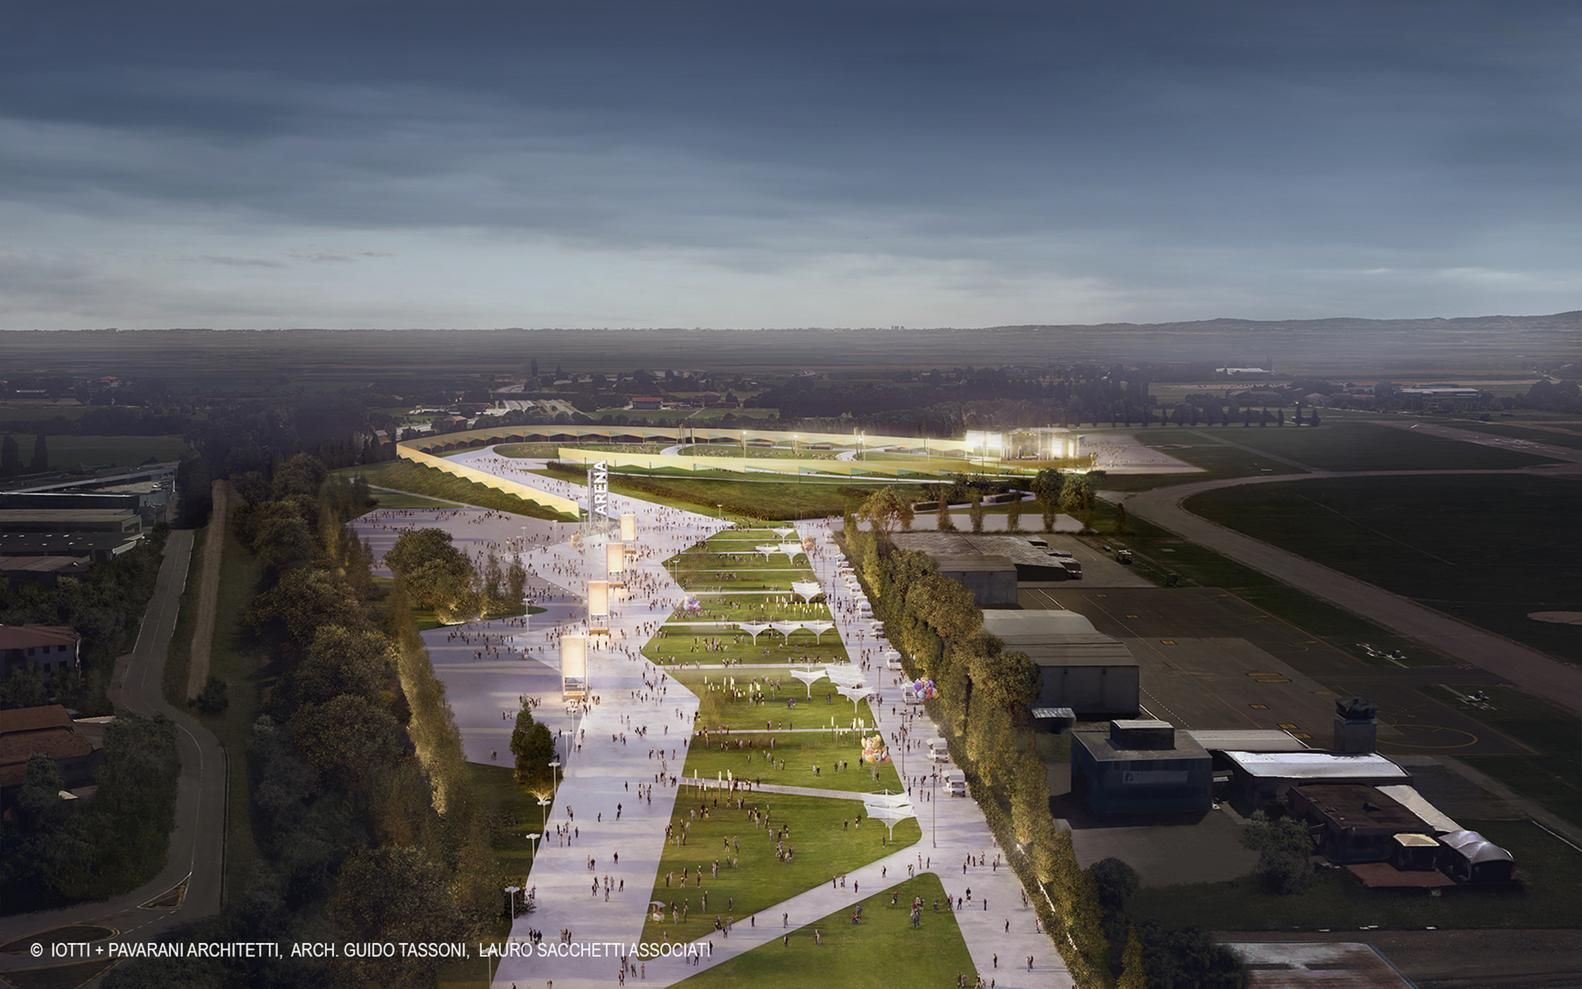 The Largest Open-Air Venue for Events and Concerts in Europe is Under Construction in Italy